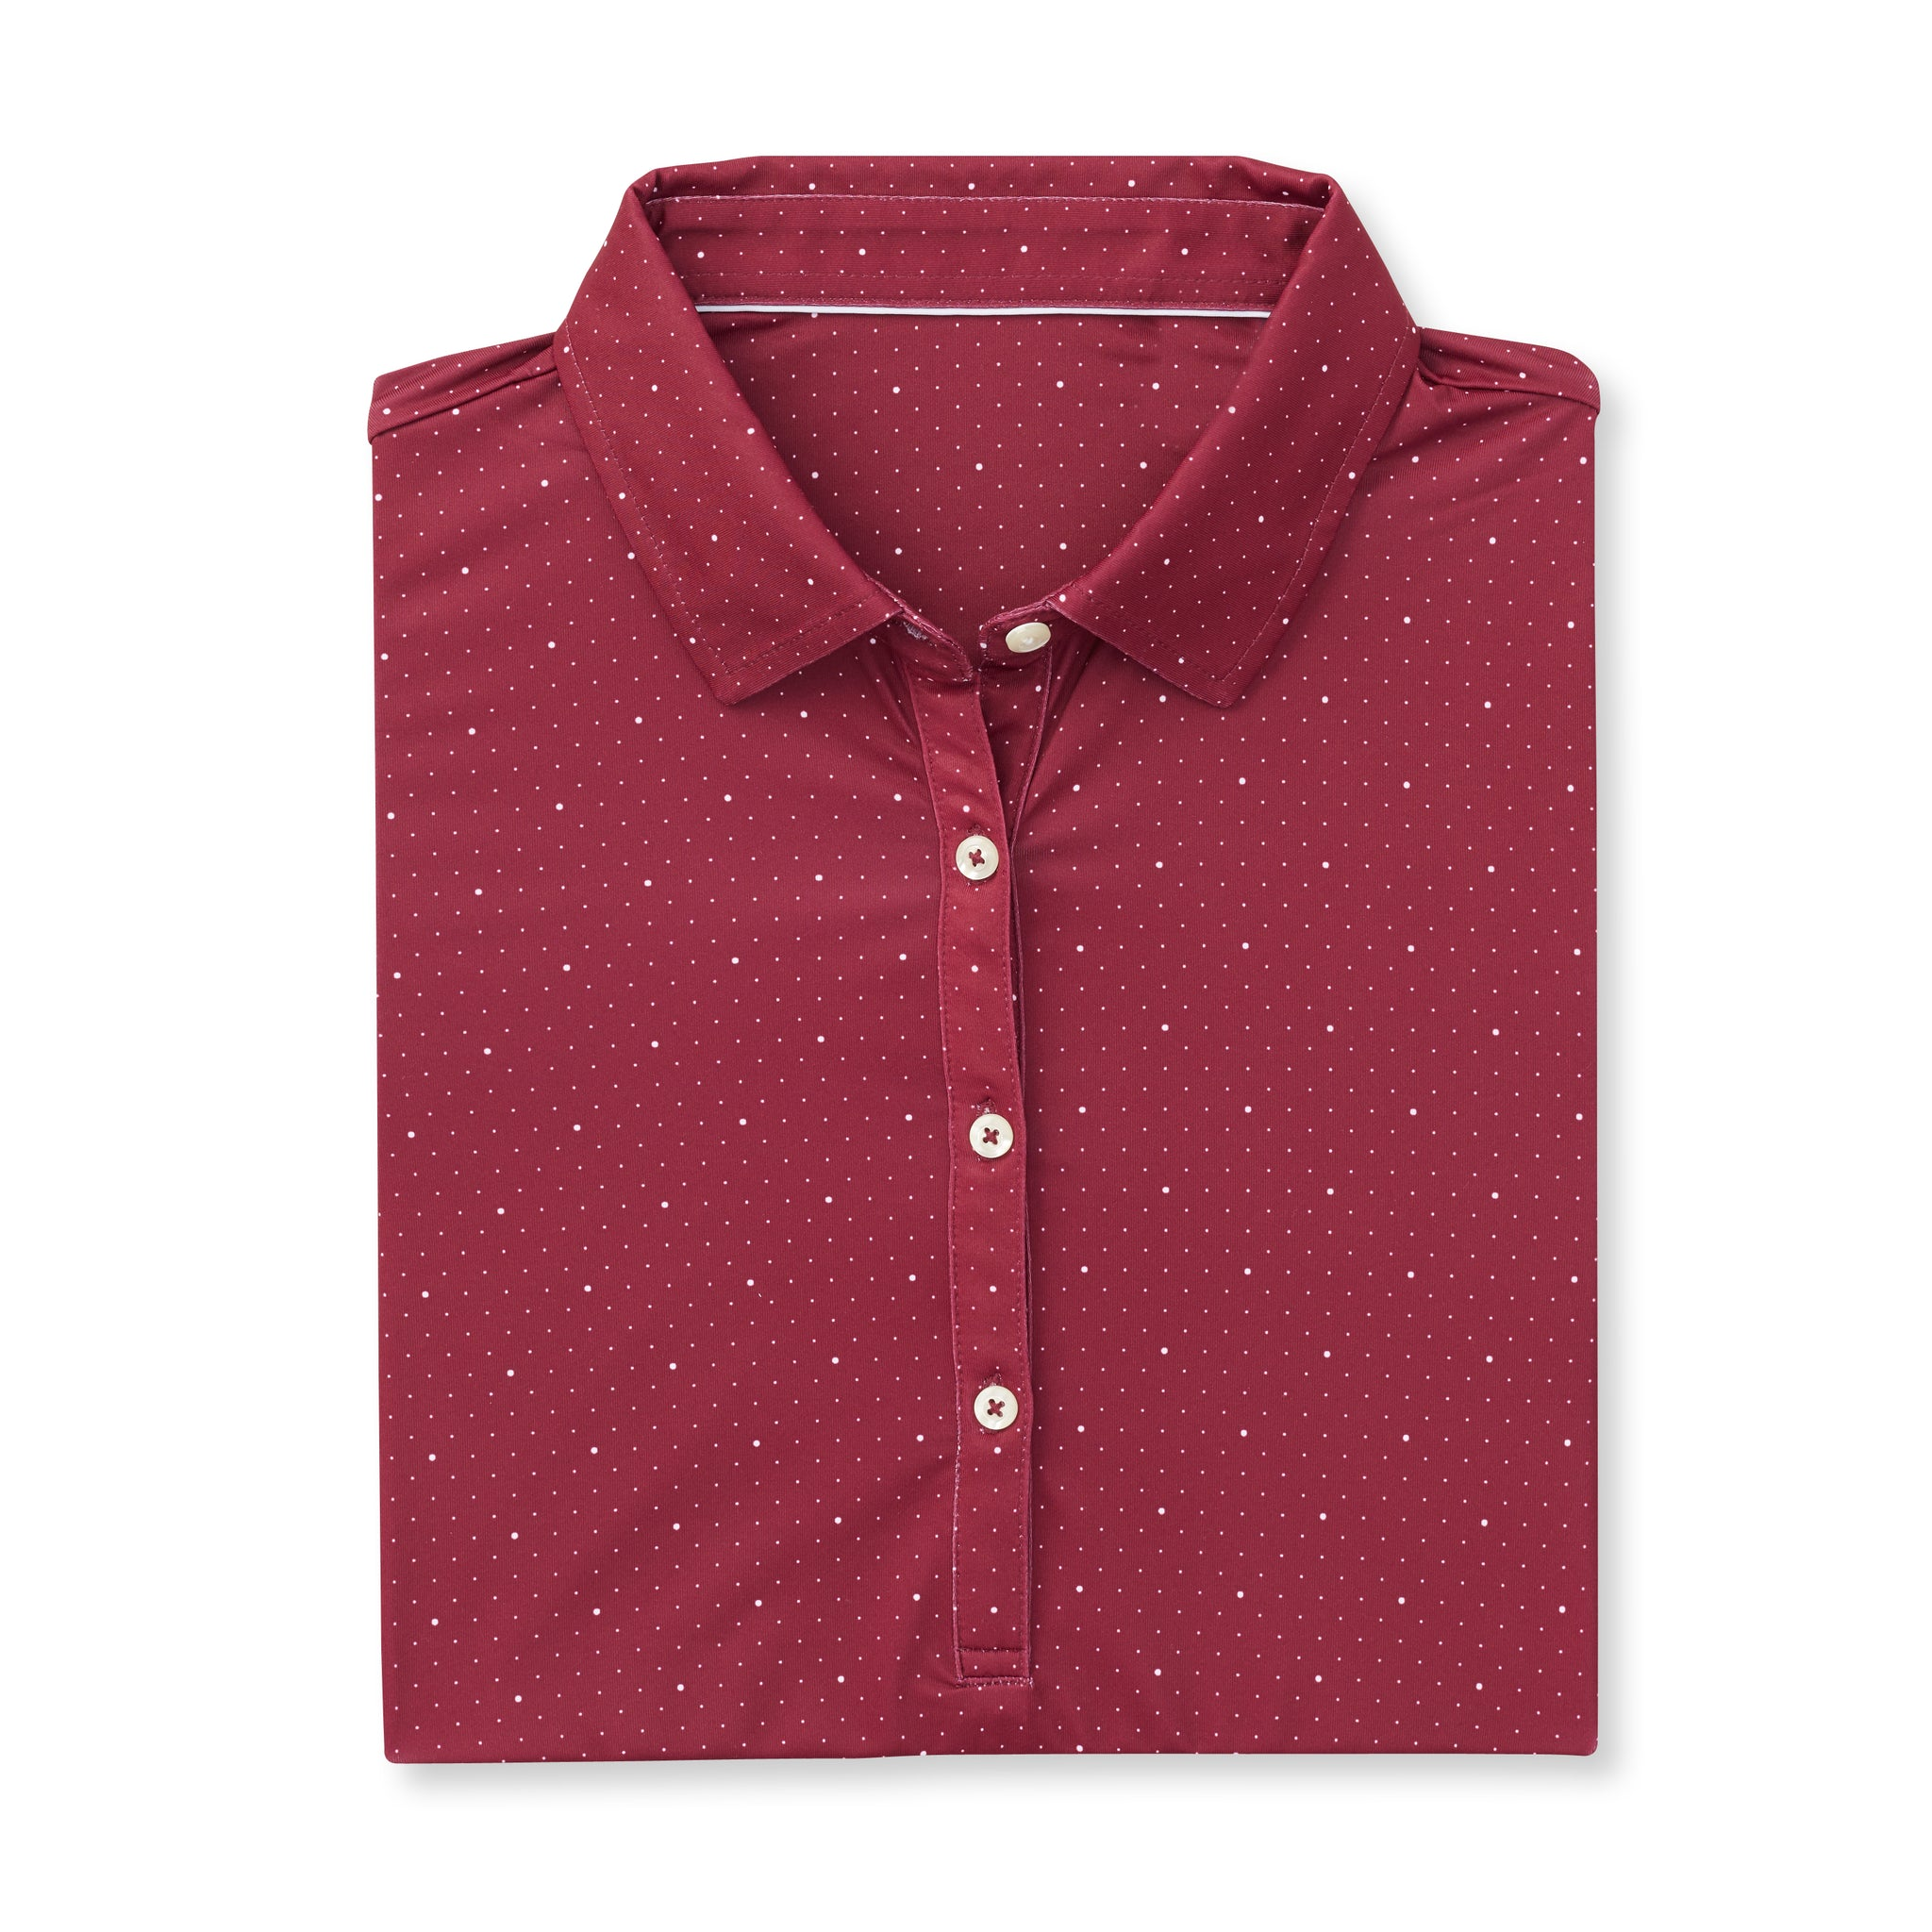 Womens ECOTEC Short Sleeve Dual Dot Polo - Merlot/White IS76803W